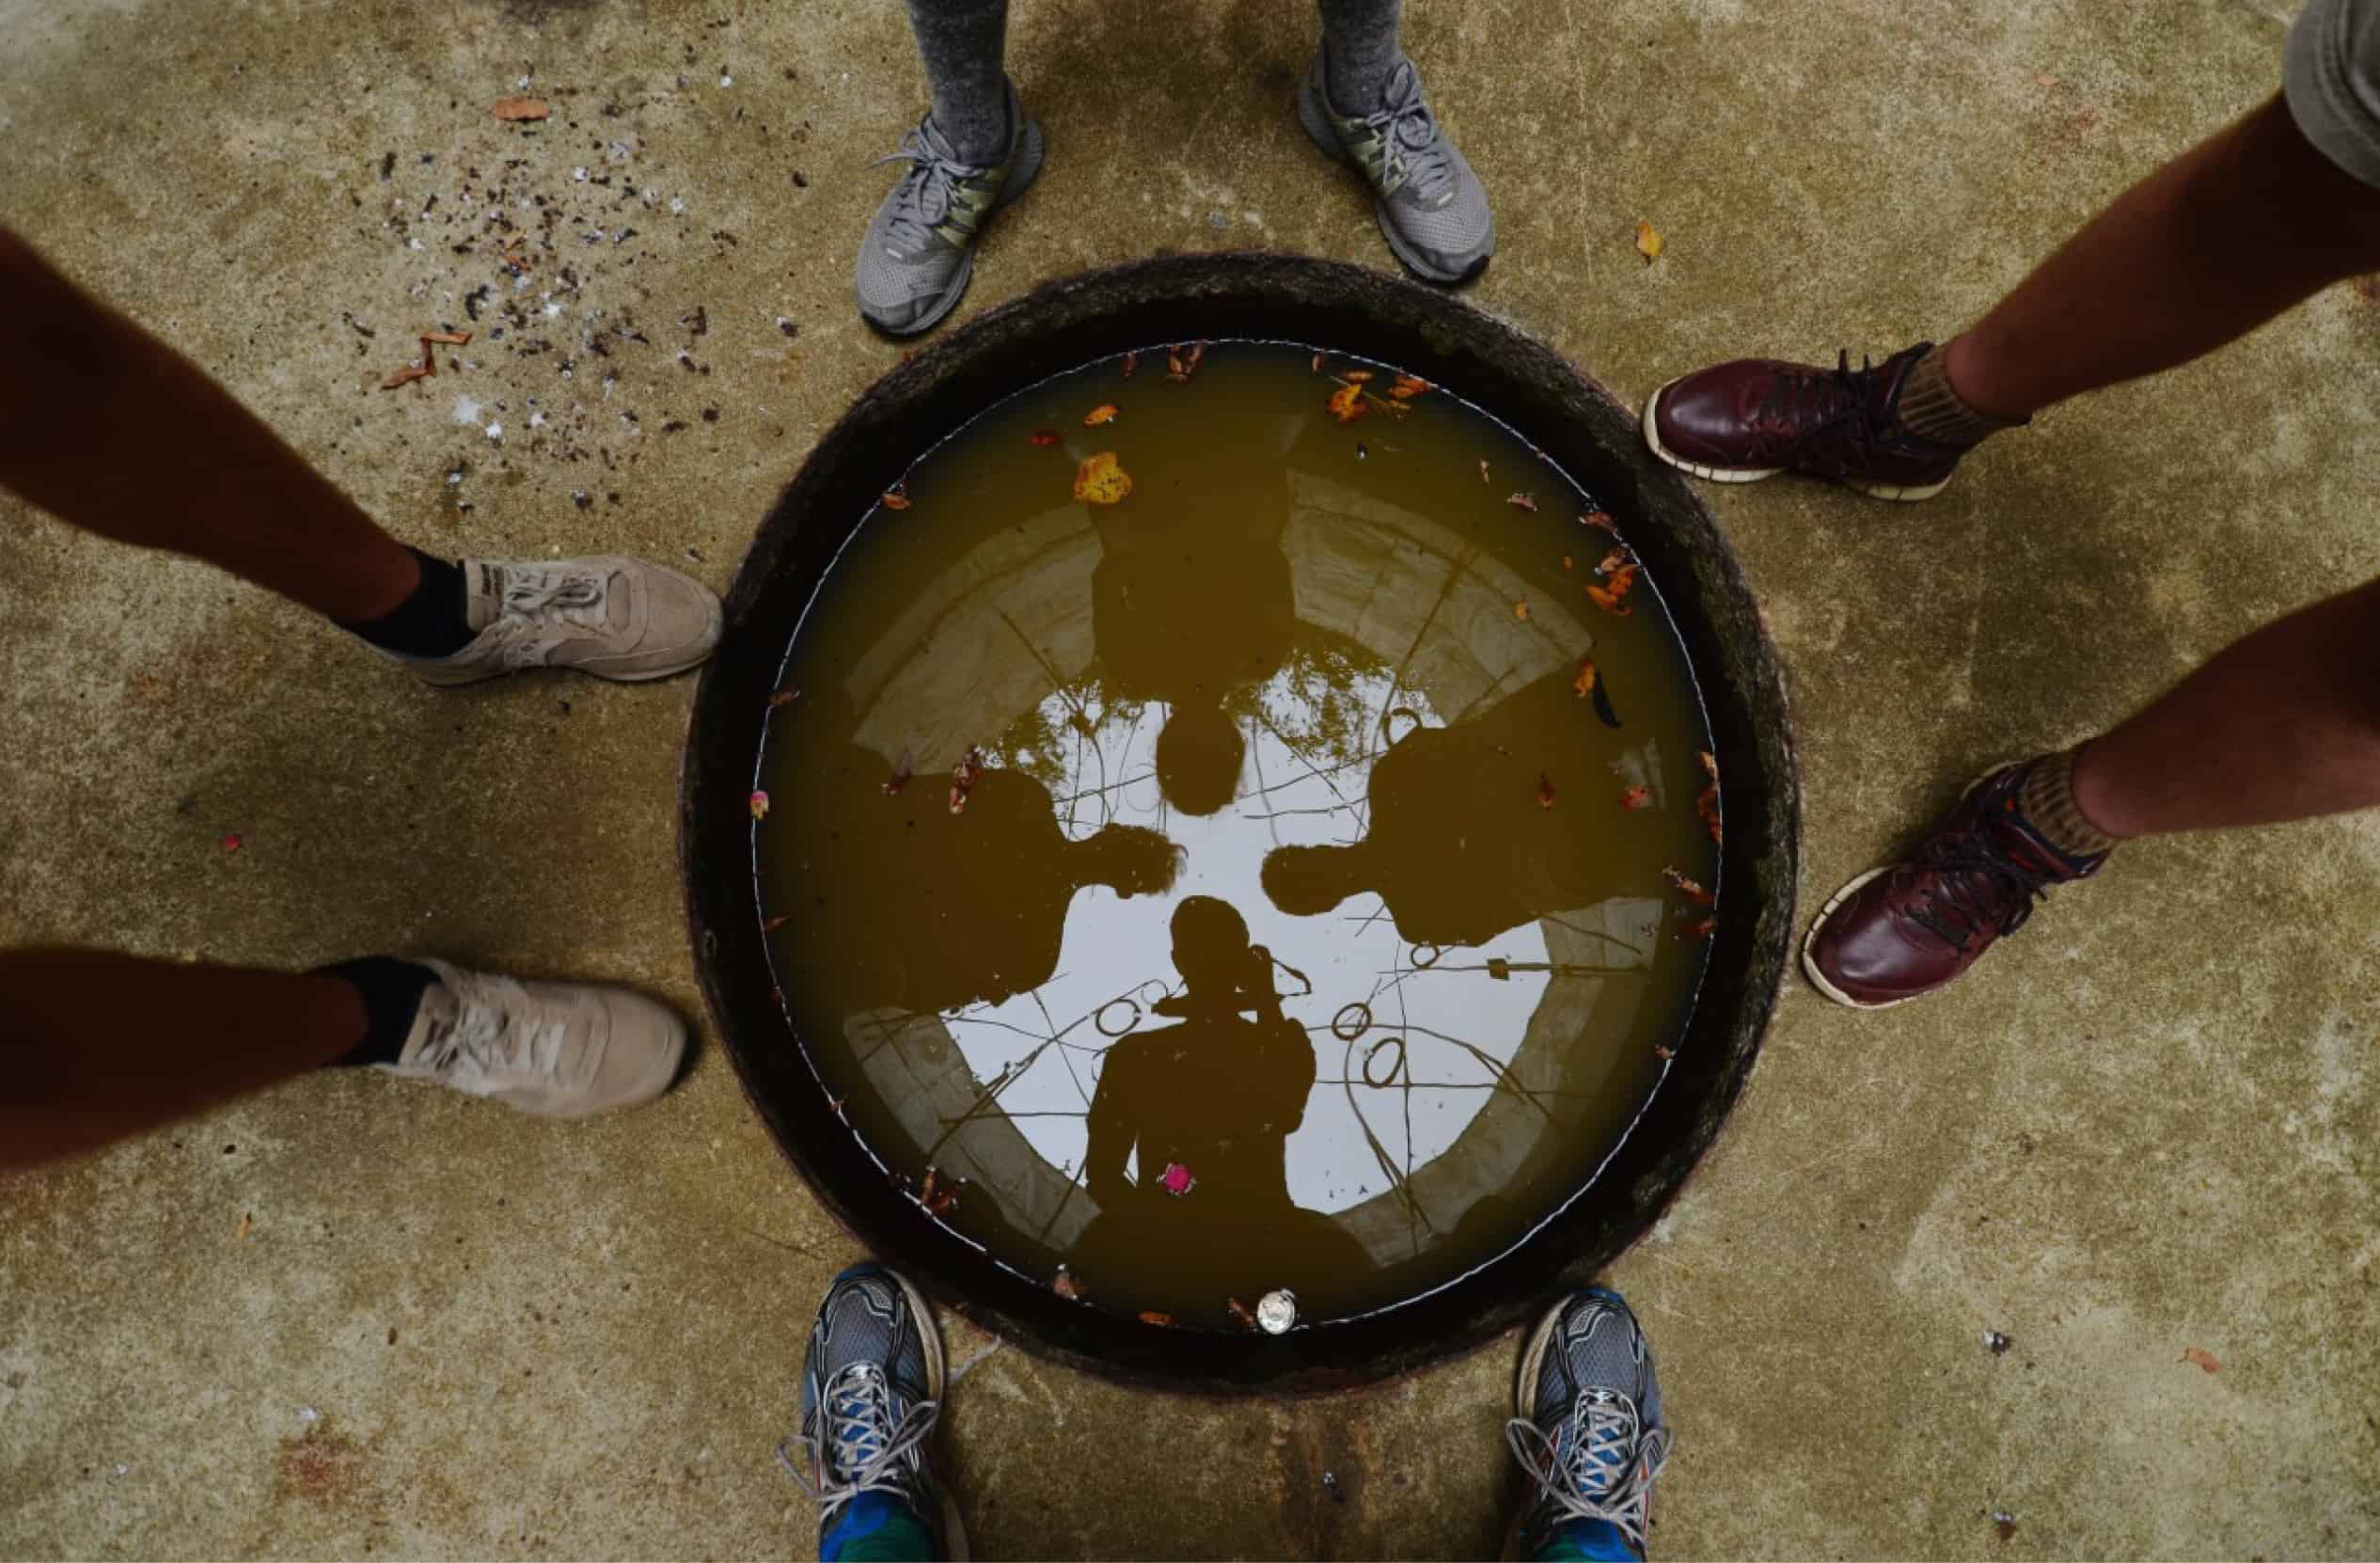 4 students looking down into the pond, shot overhead so their silhouettes in the water and feet on the edge are visible